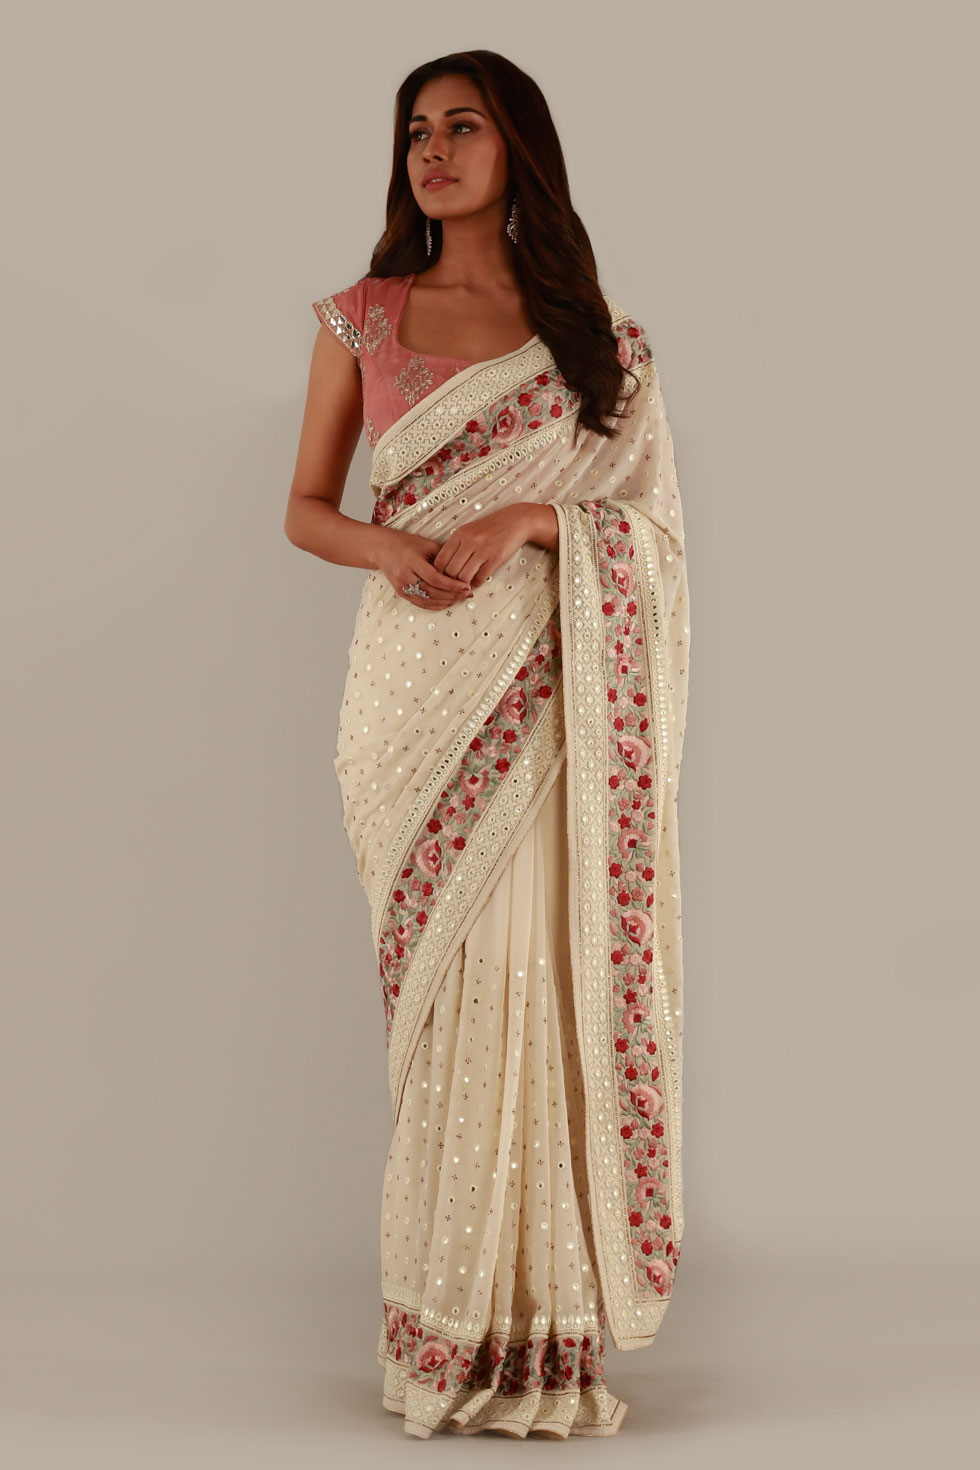 Ivory white classic saree with contrast border with thread work and contrast pink choli with embellishments